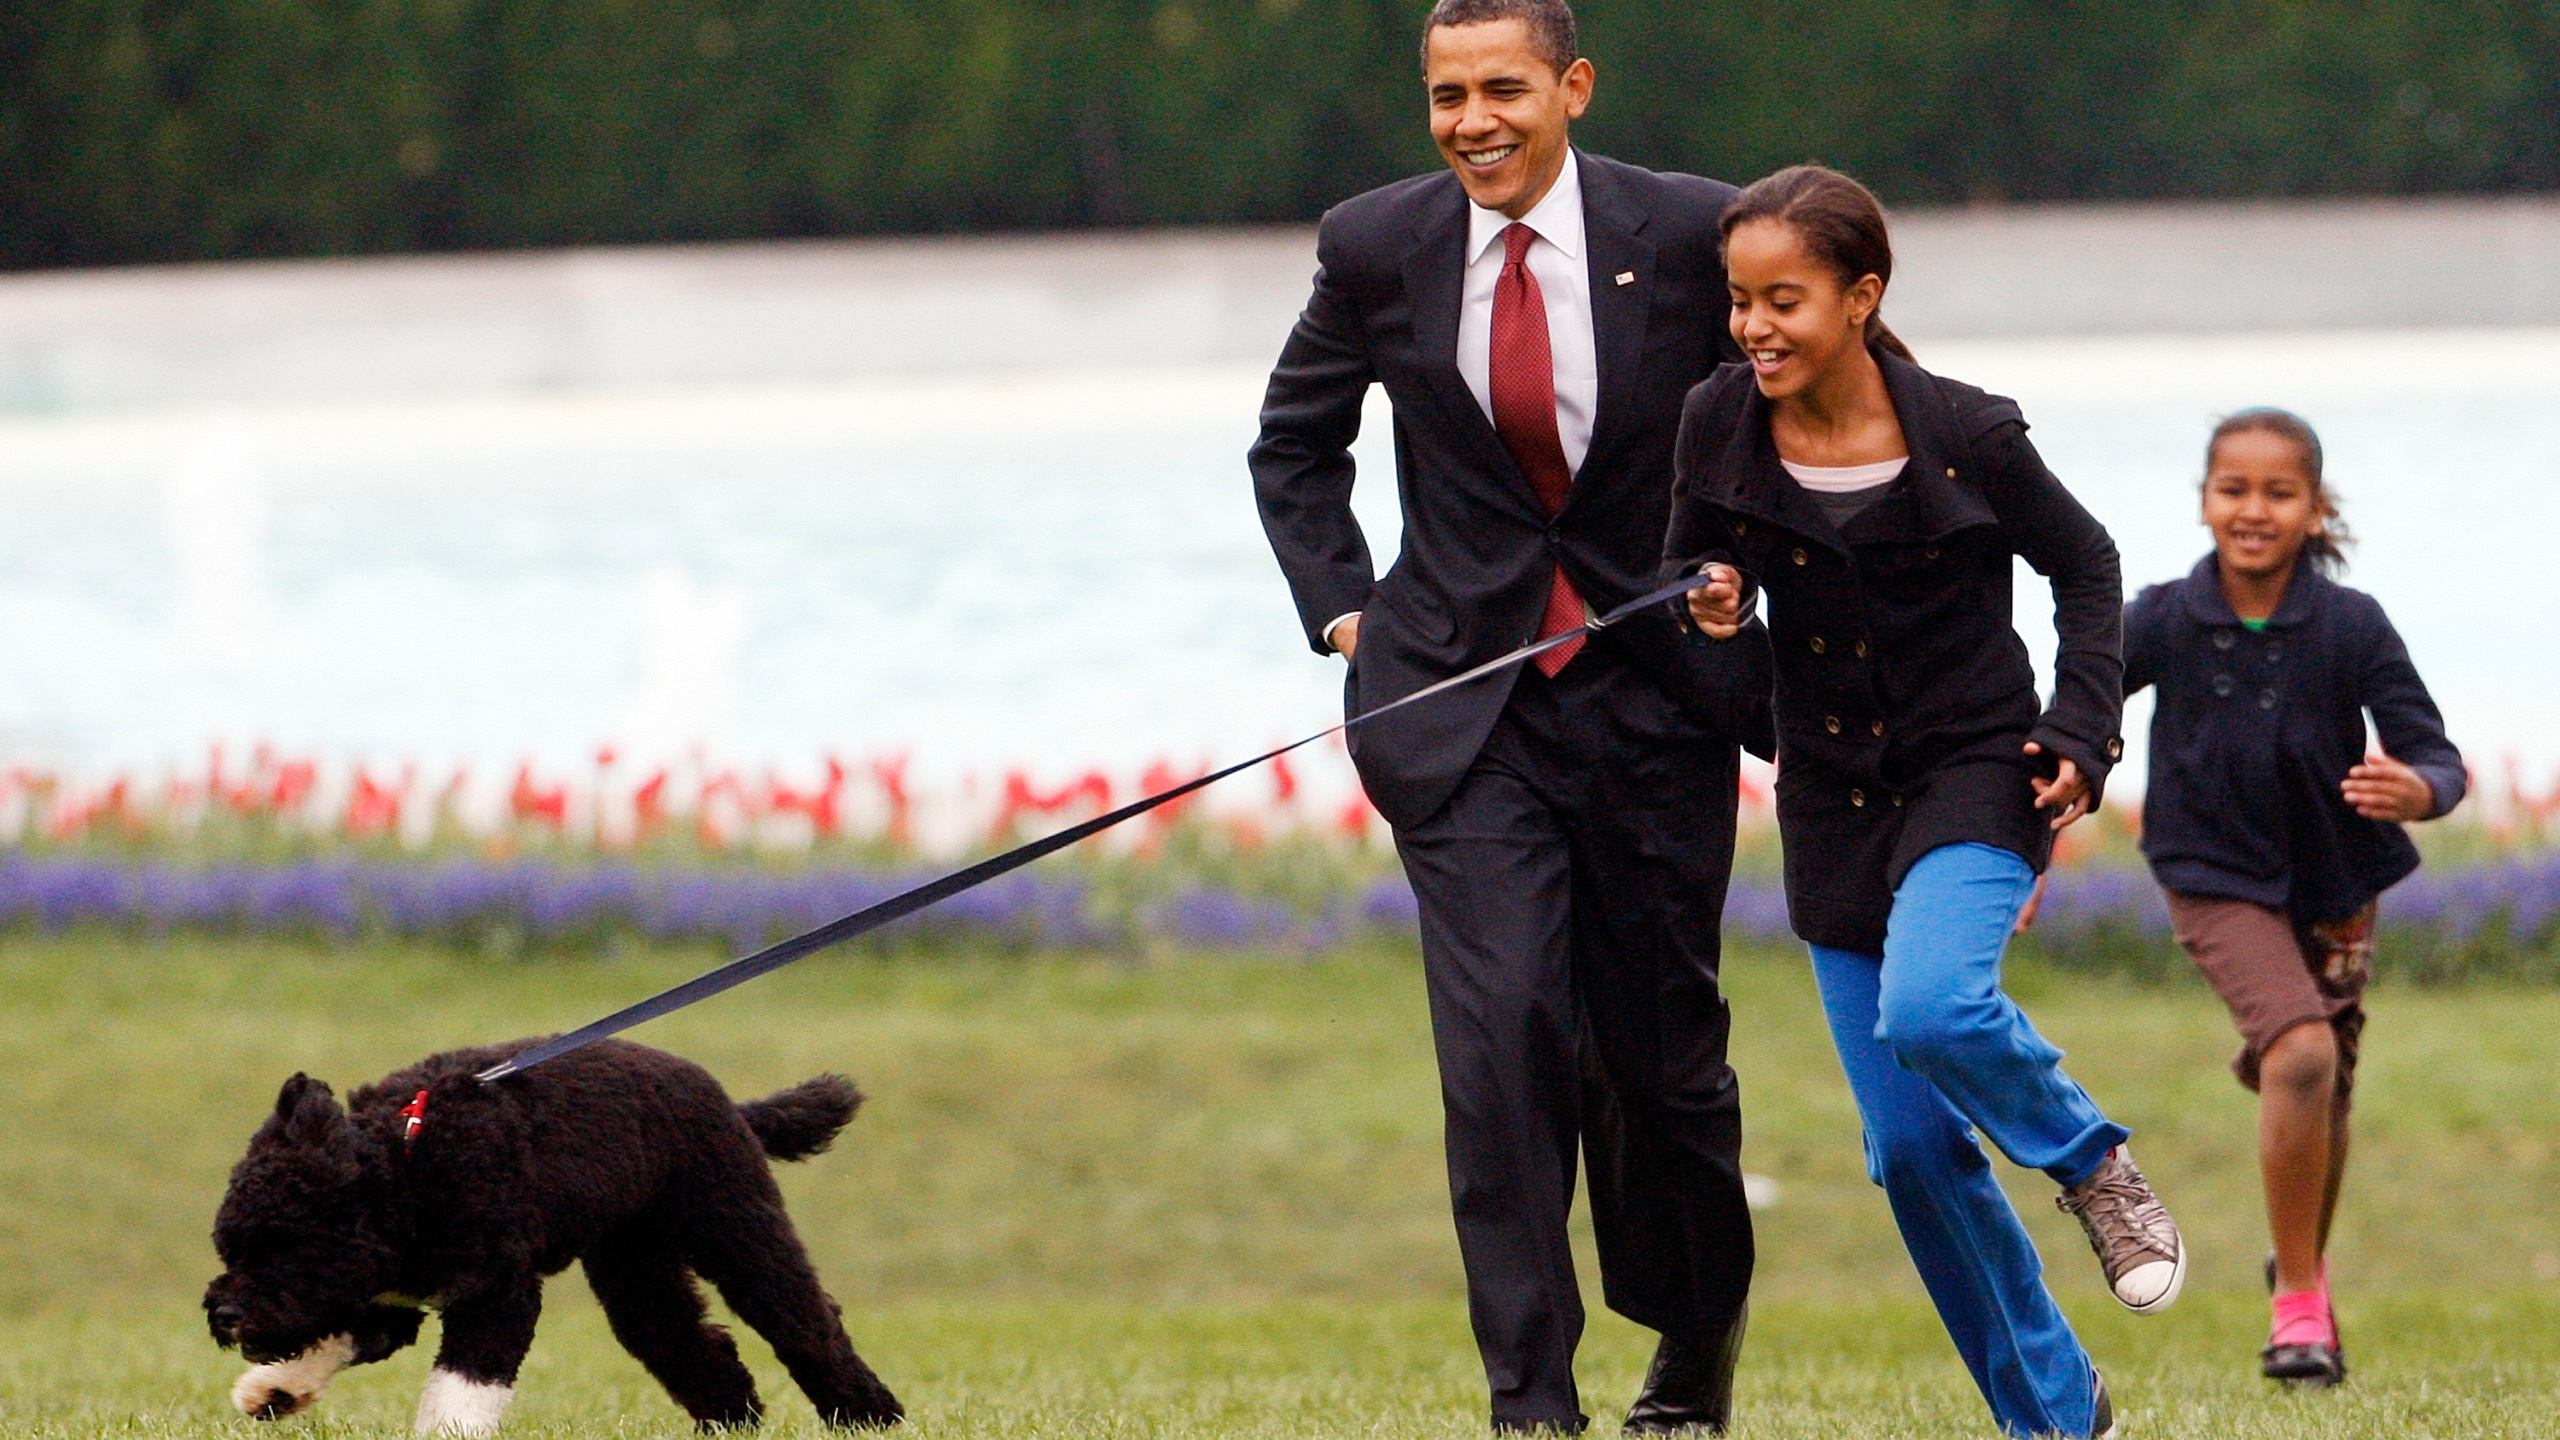 In this April 14, 2009, file photo Malia Obama runs with Bo, followed by President Barack Obama and Sasha Obama, on the South Lawn of the White House in Washington.(AP Photo/Ron Edmonds, File)